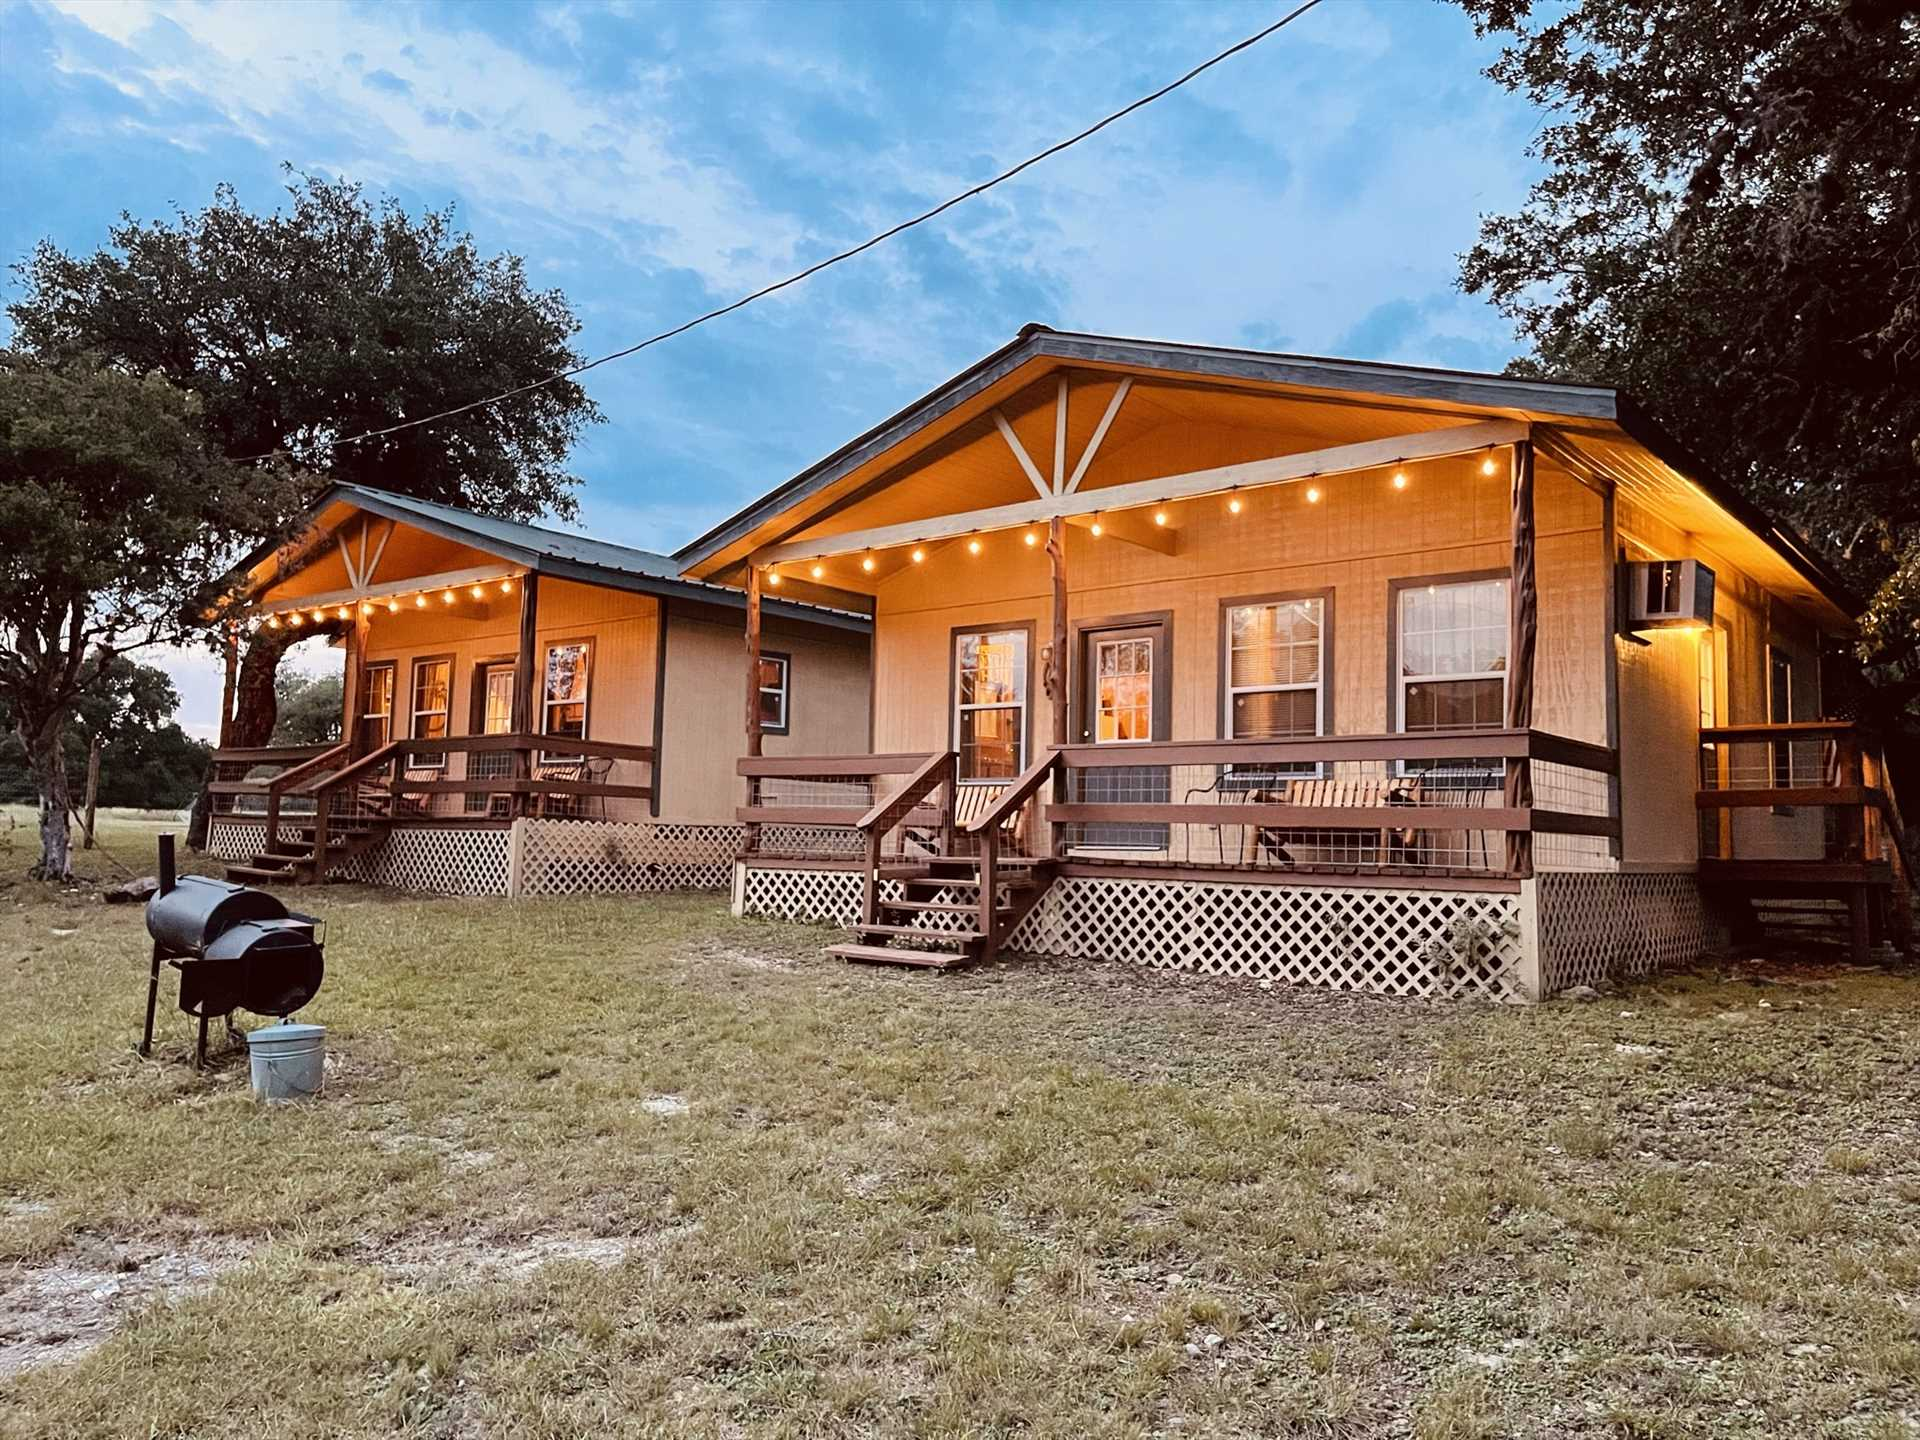 The Gone Fishin' and Lone Star Cabins at Lightning Bug Springs combine to create the dynamic duo of Hill Country getaways: the Texas Star Cabins!